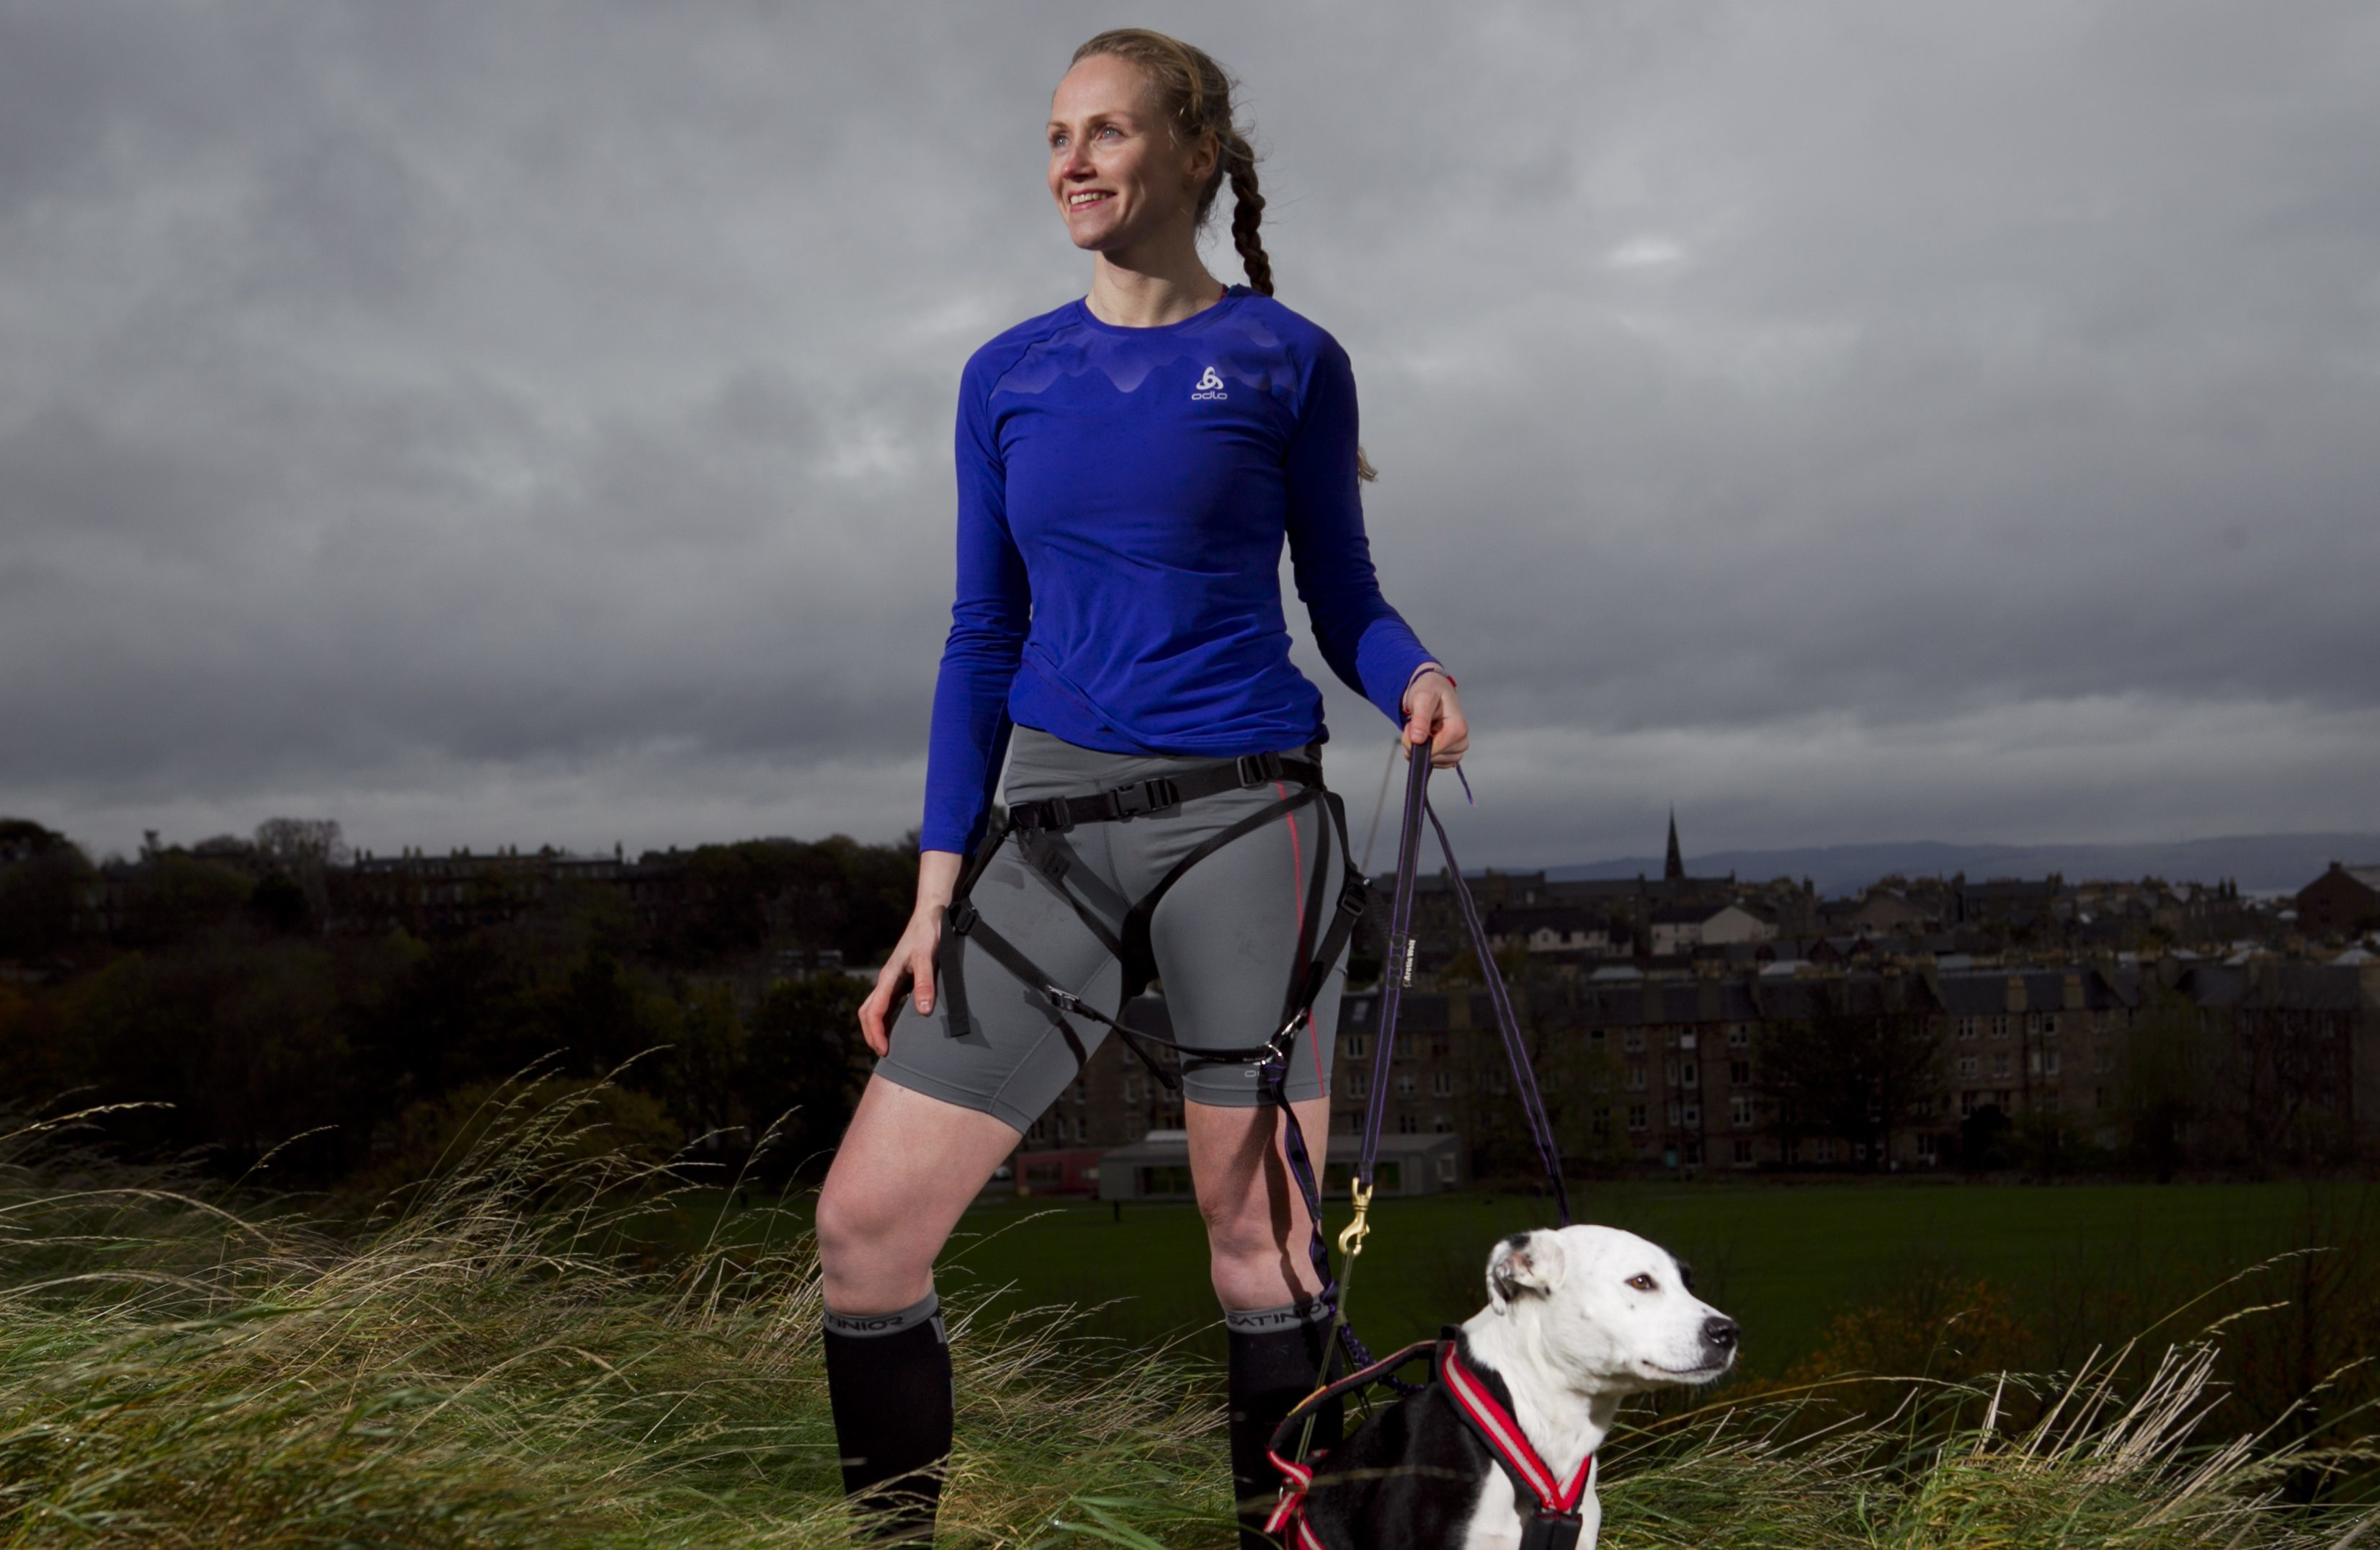 Agata Zaremba, and her dog, Roger, who compete in CaniCross - crossing country running with dogs (Andrew Cawley / DC Thomson)